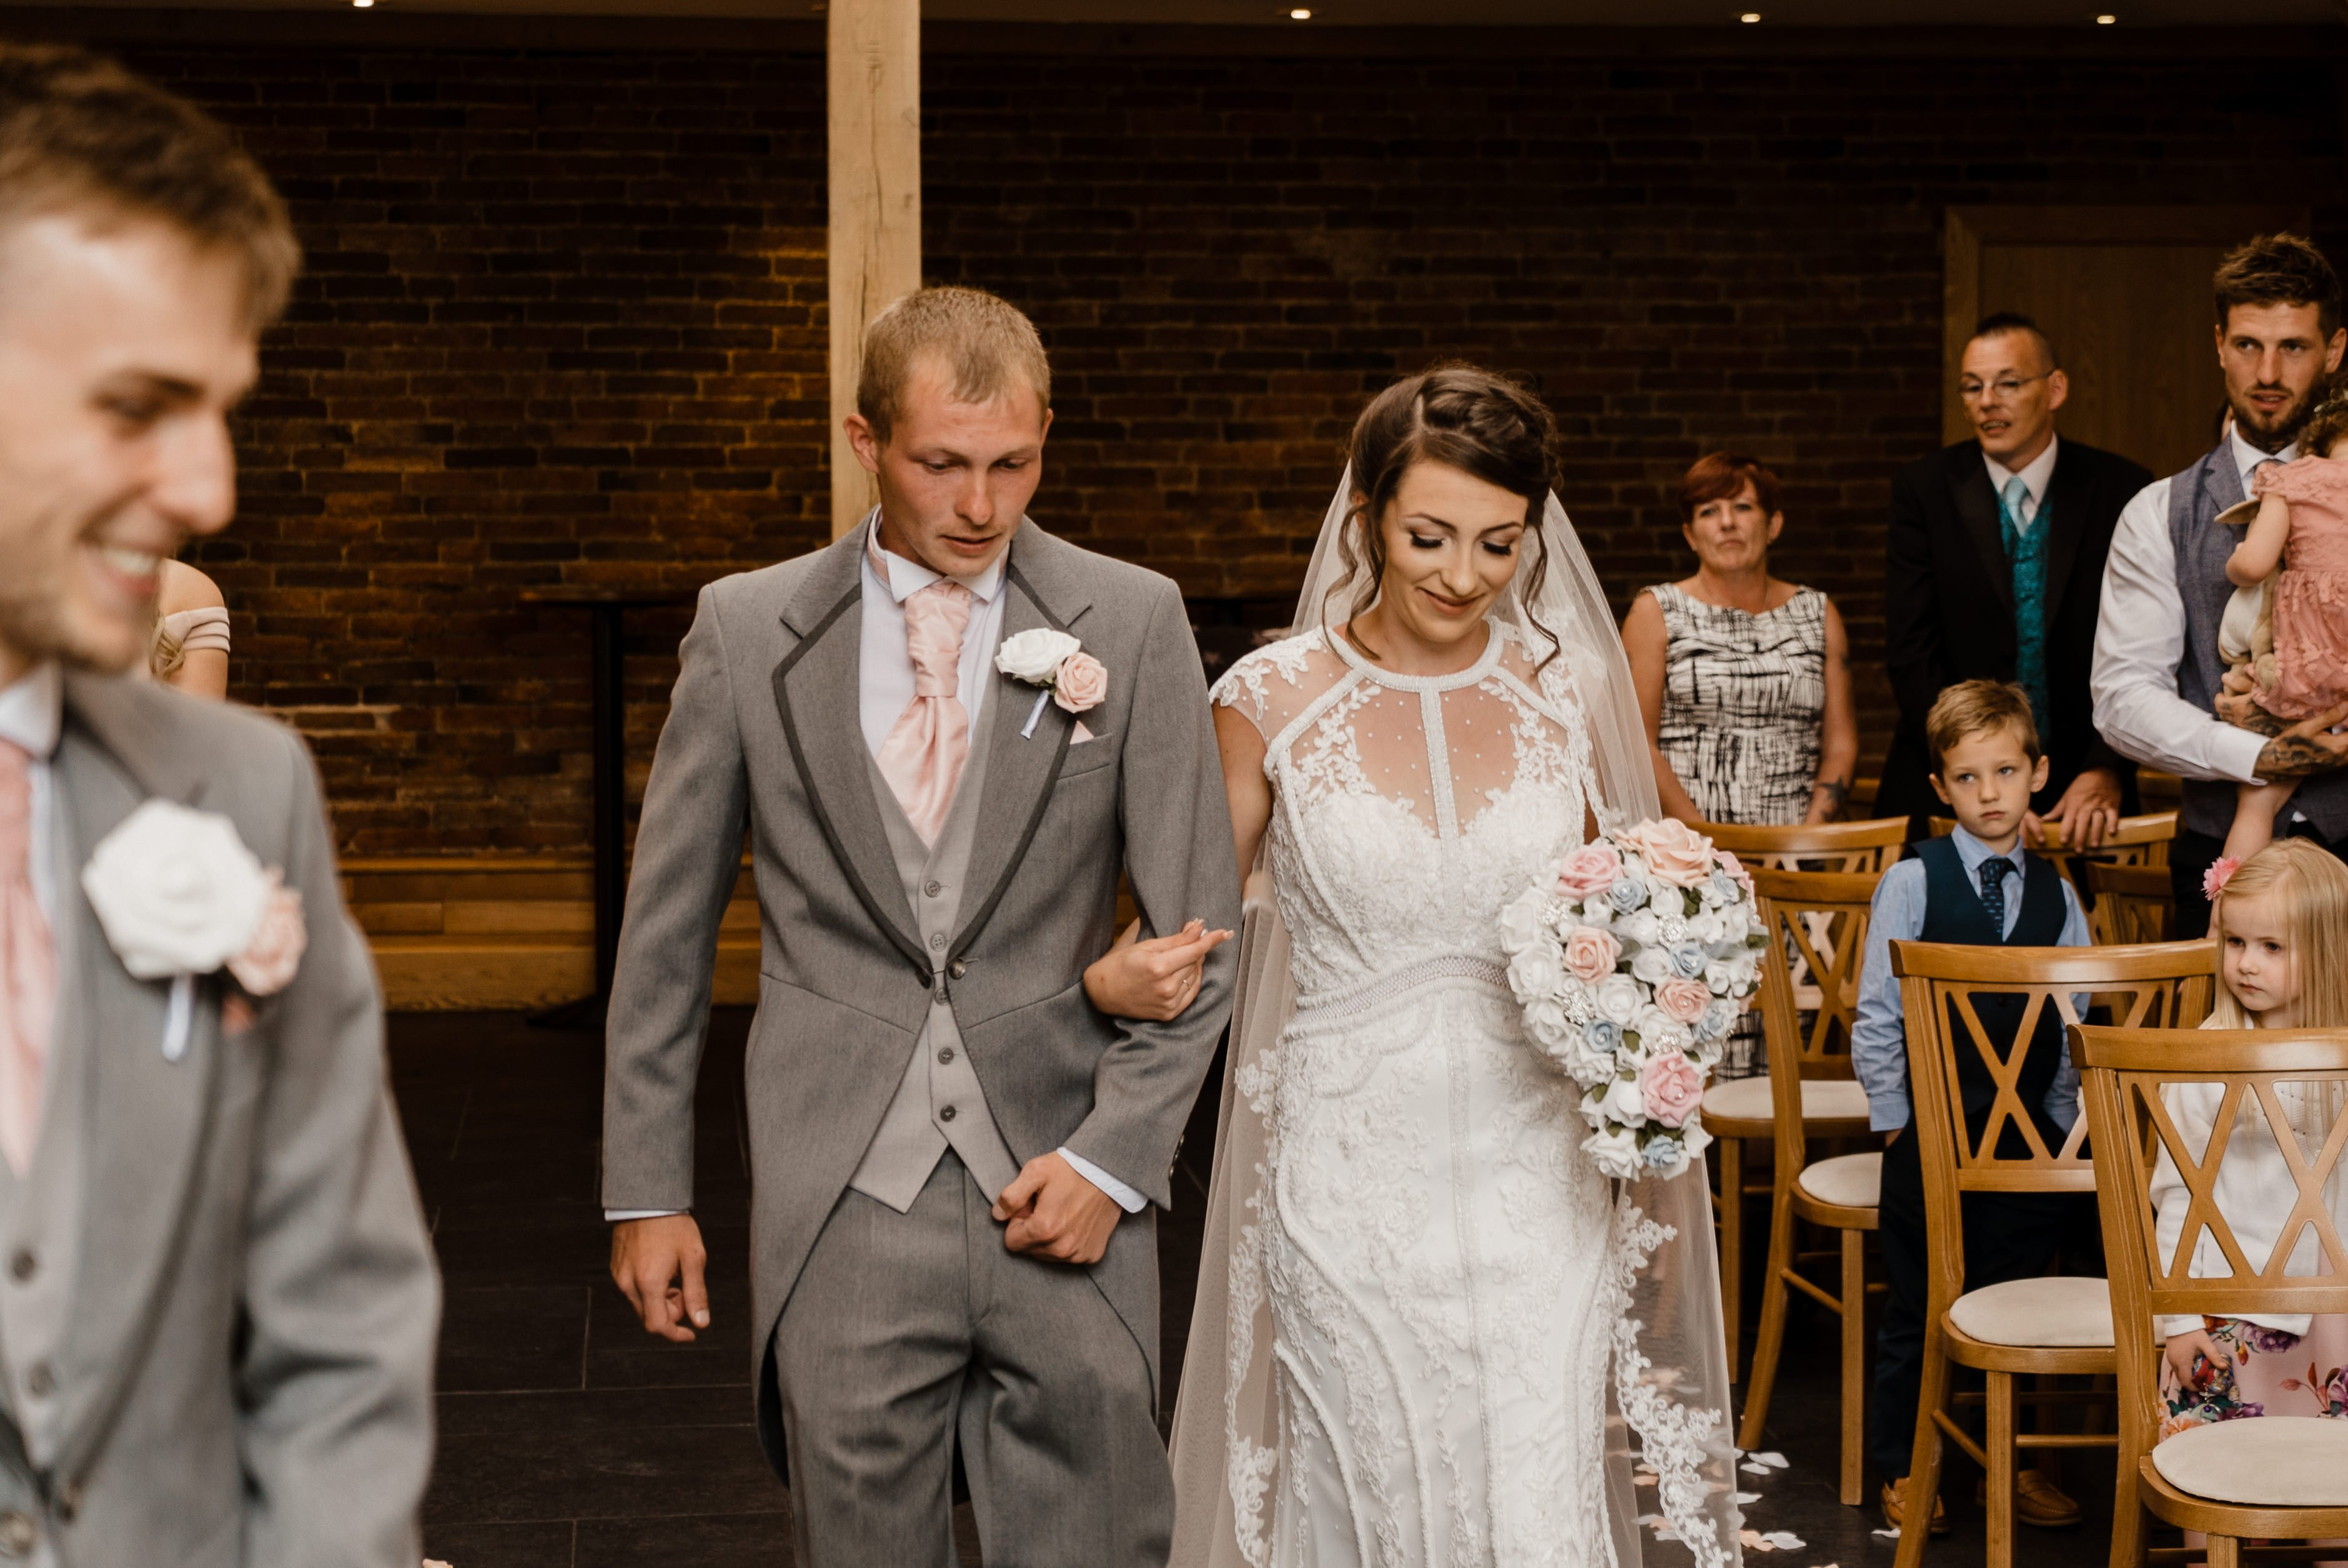 Sneak Peek - Sheryl & Sam Mythe Barn Wedding Ceremony 10